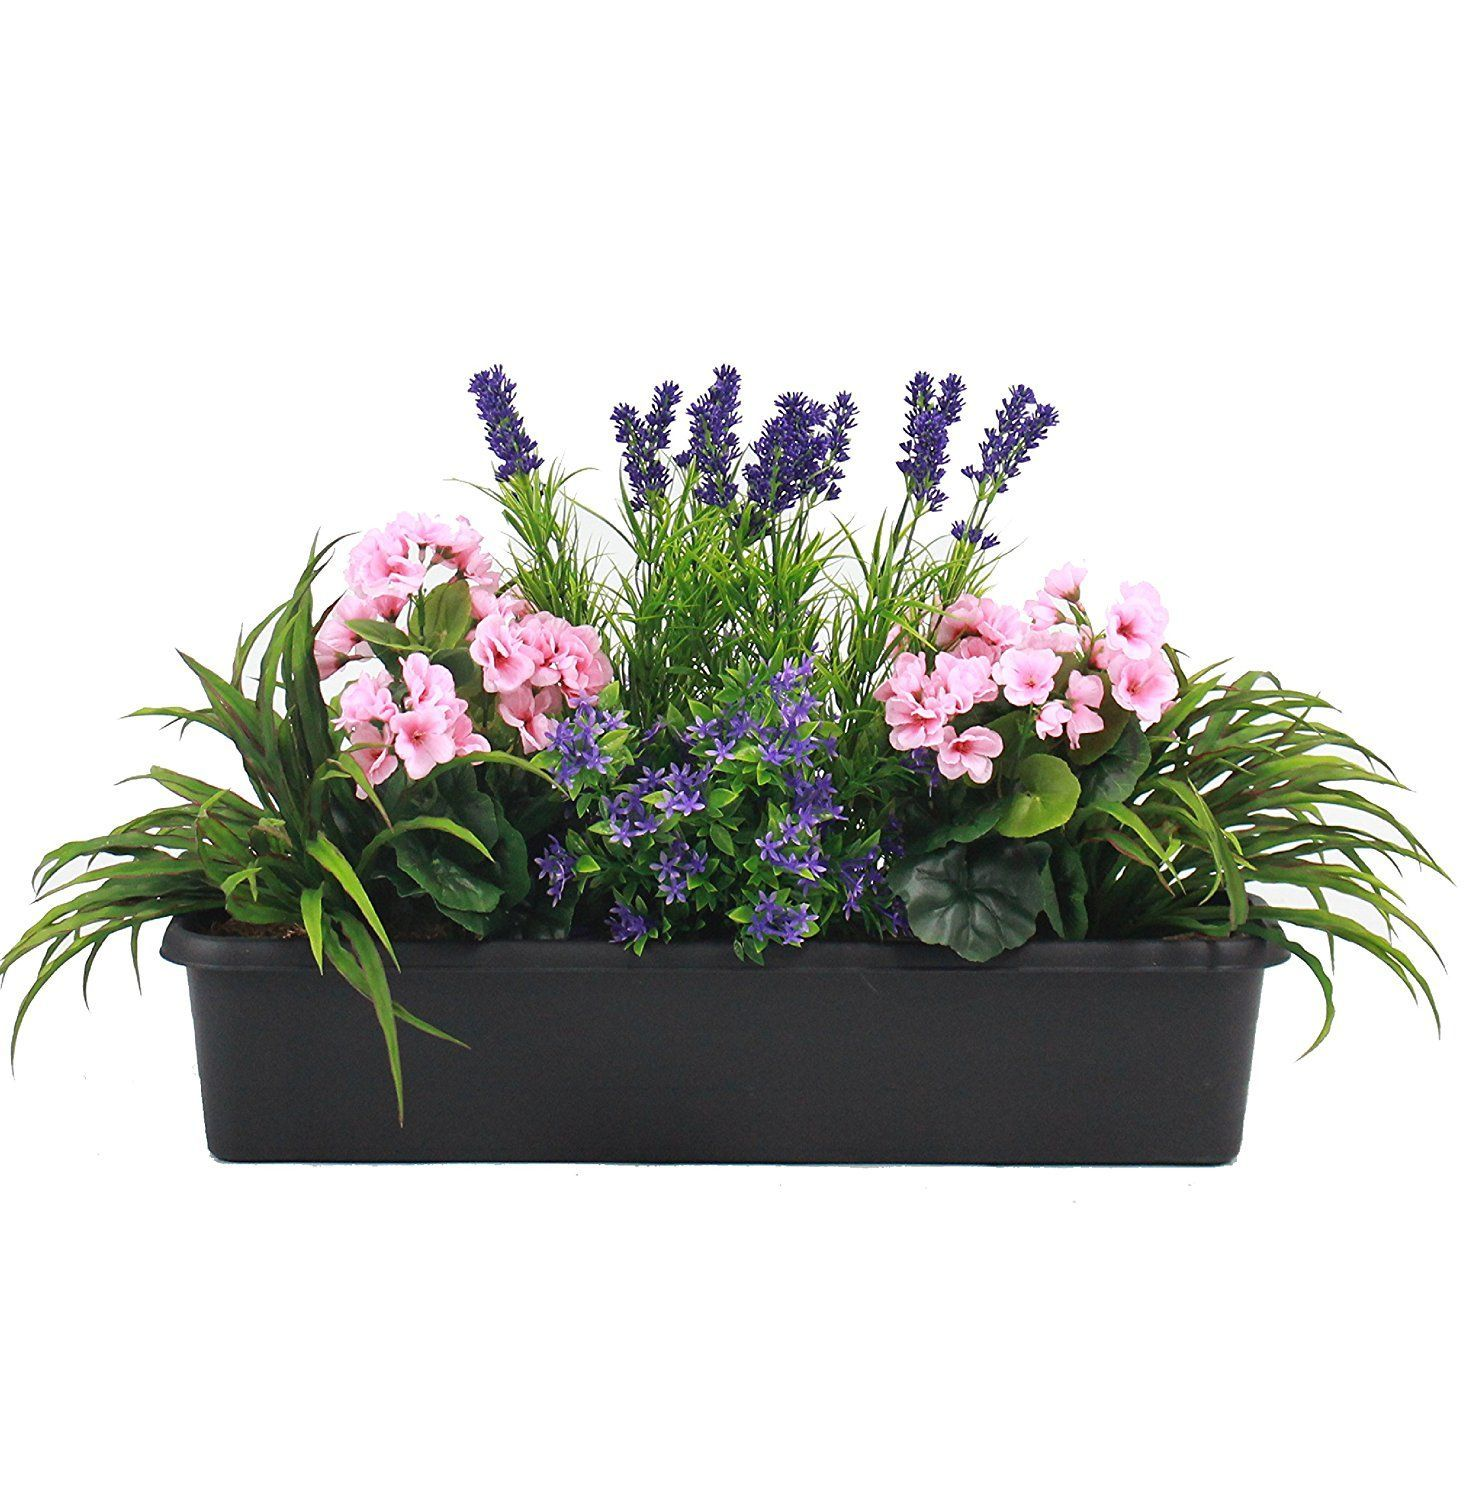 Artificial mixed flower window box trough container with yucca